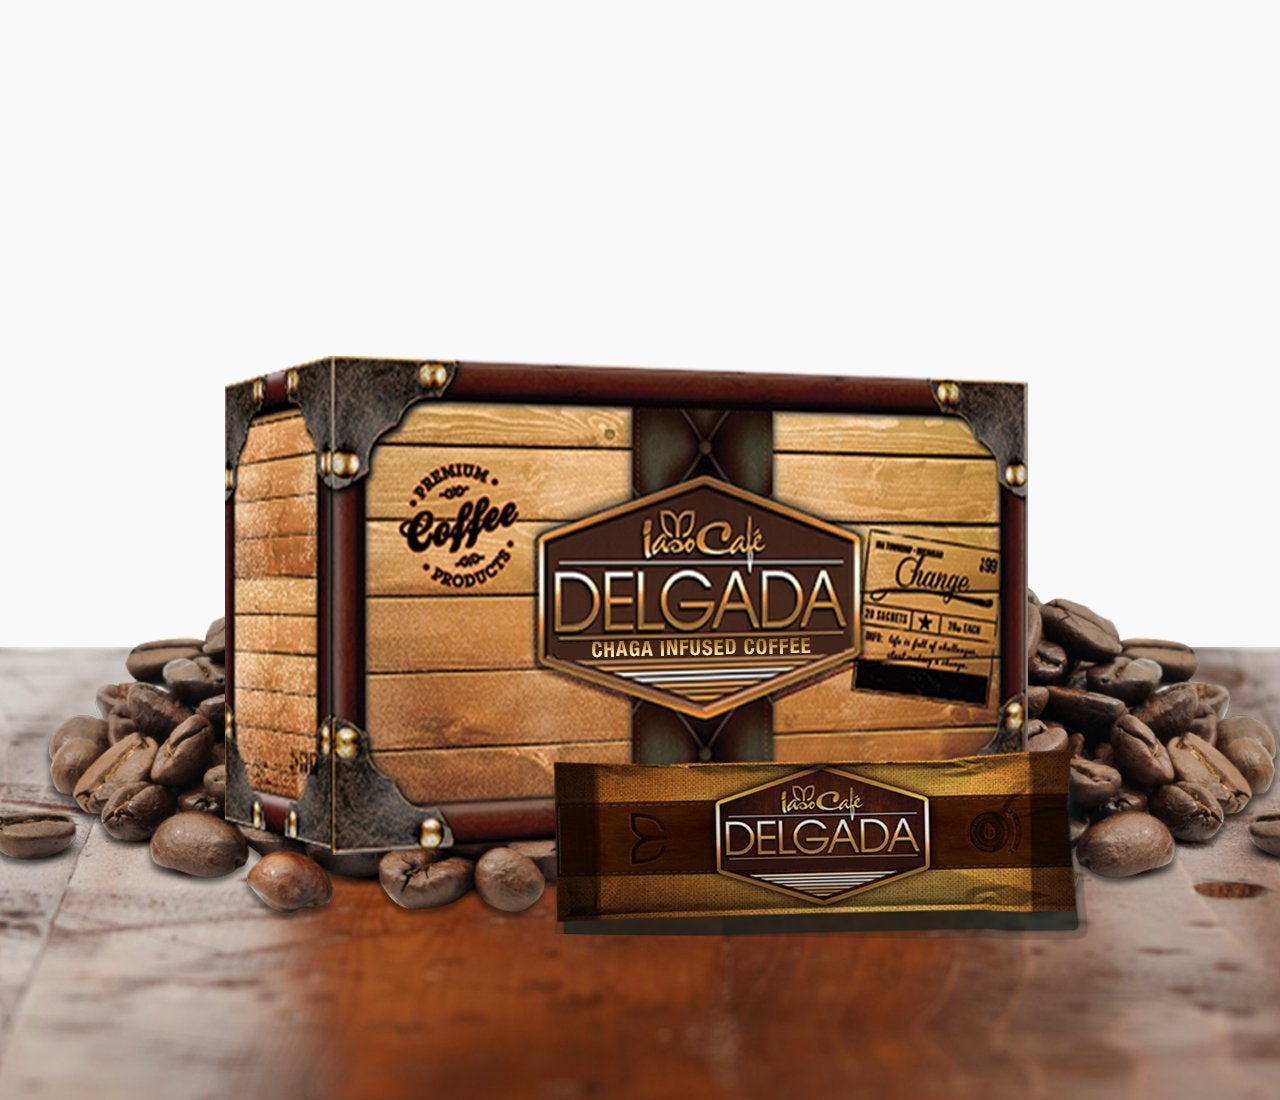 Delgada Coffee Infused with Chaga 20 Sachets per box